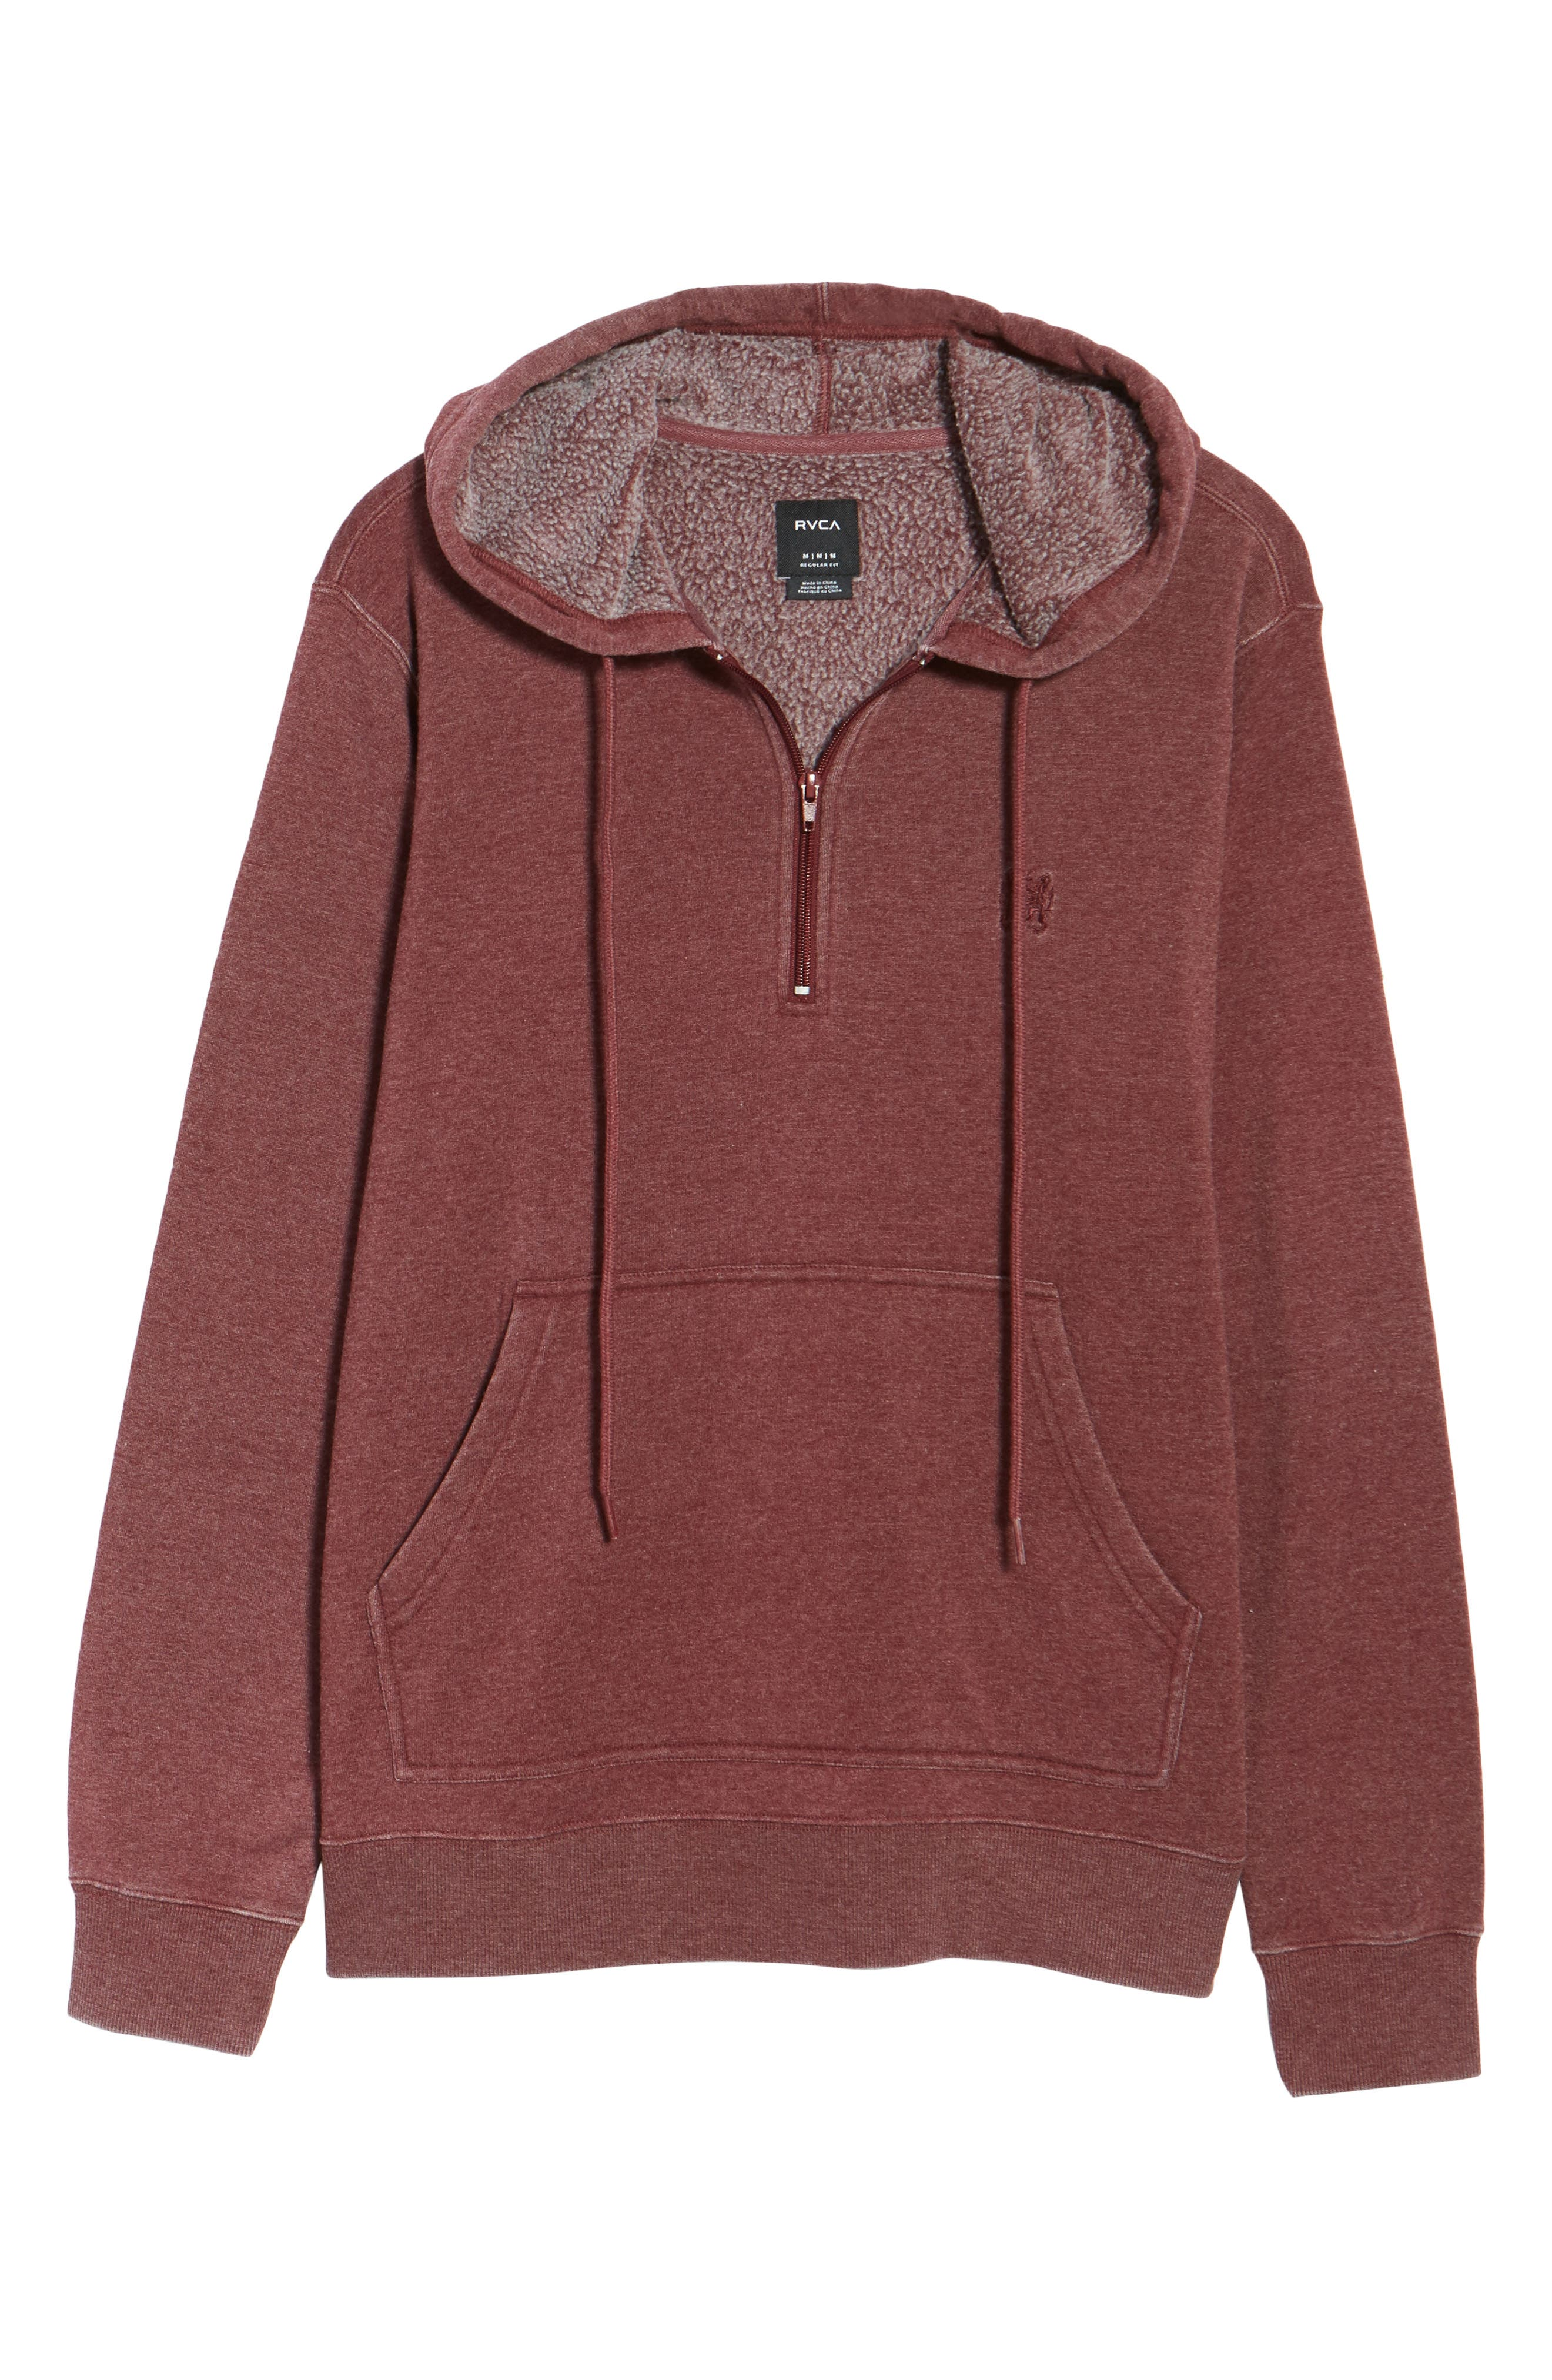 Sunwash Hoodie,                             Alternate thumbnail 6, color,                             Tawny Port